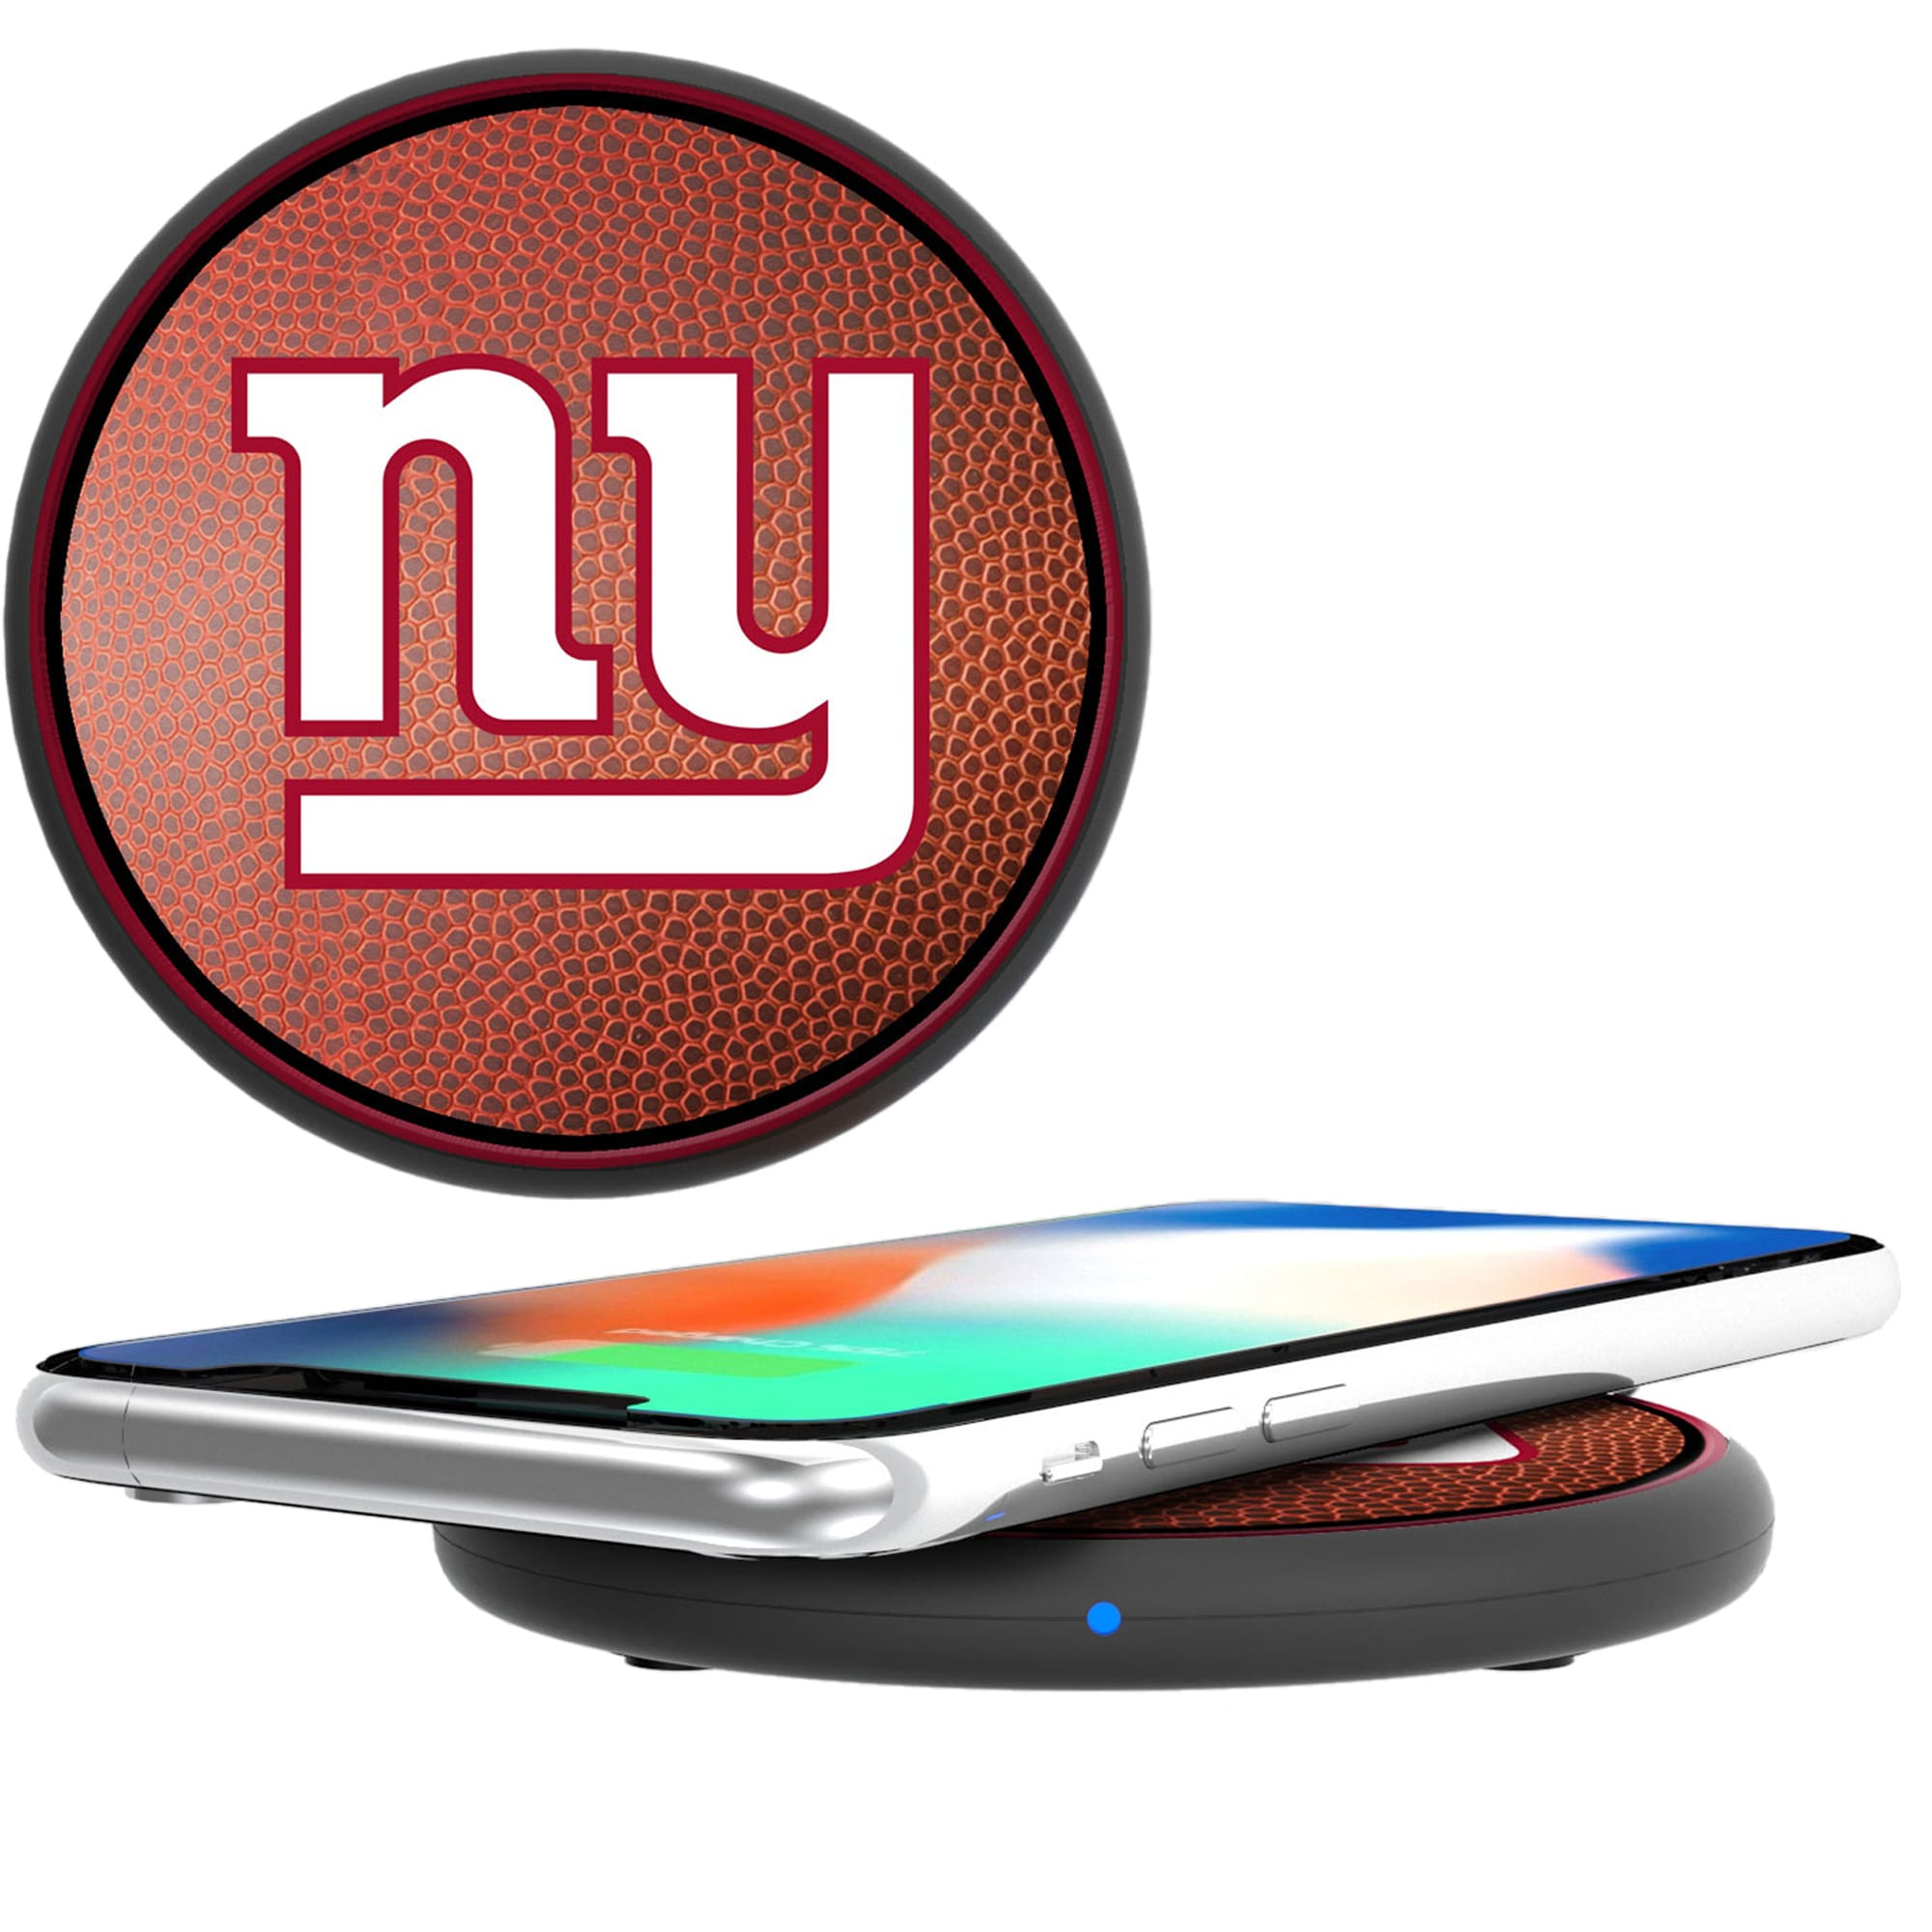 New York Giants Wireless Cell Phone Charger